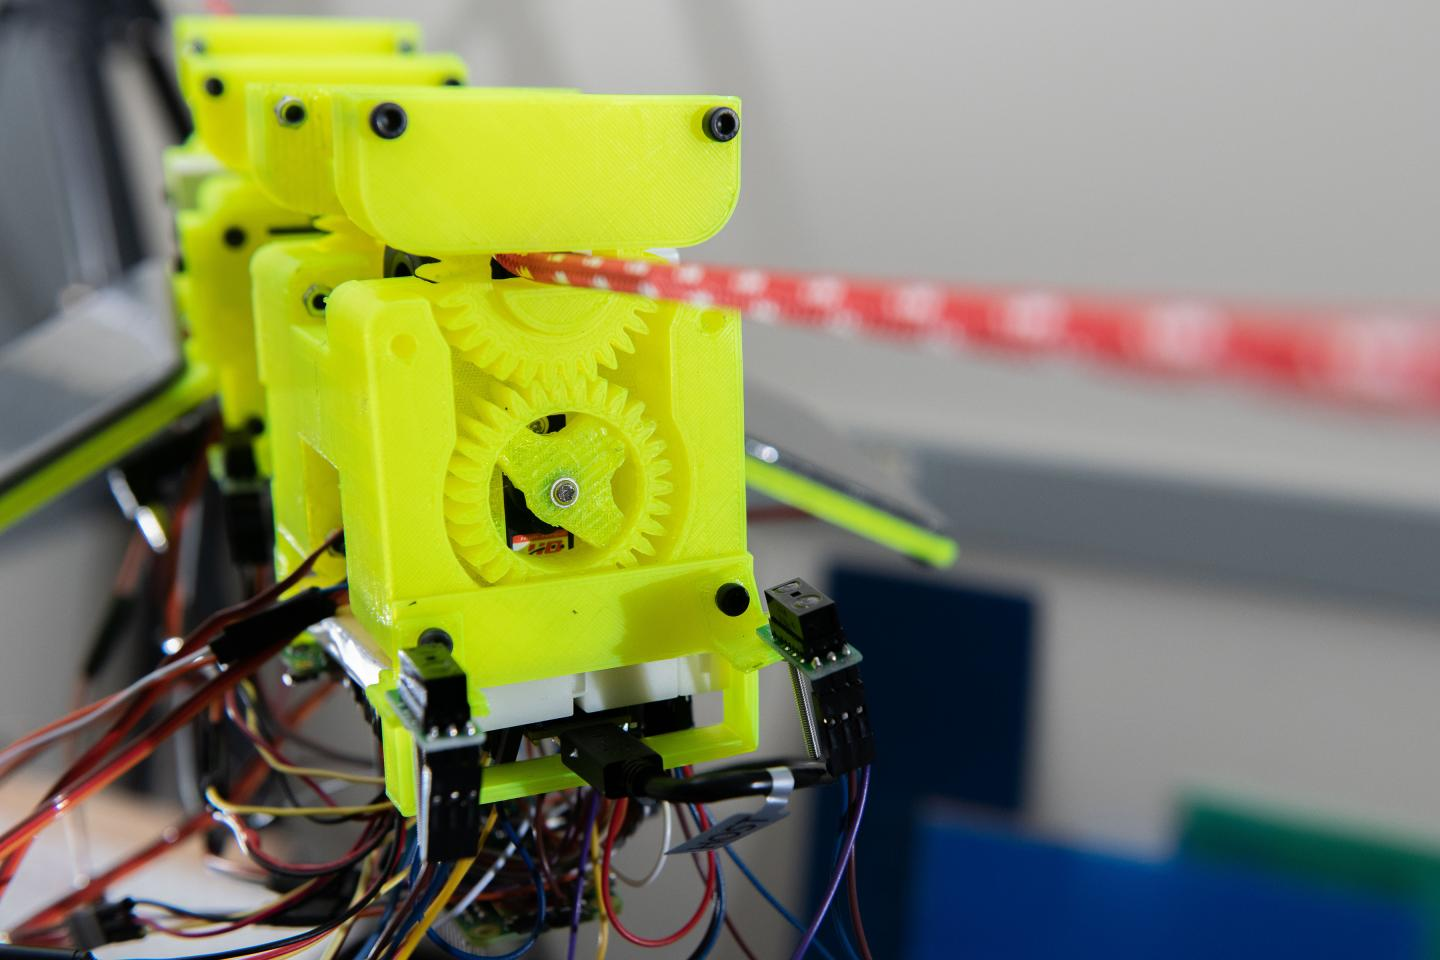 3D Printed Components of SlothBot